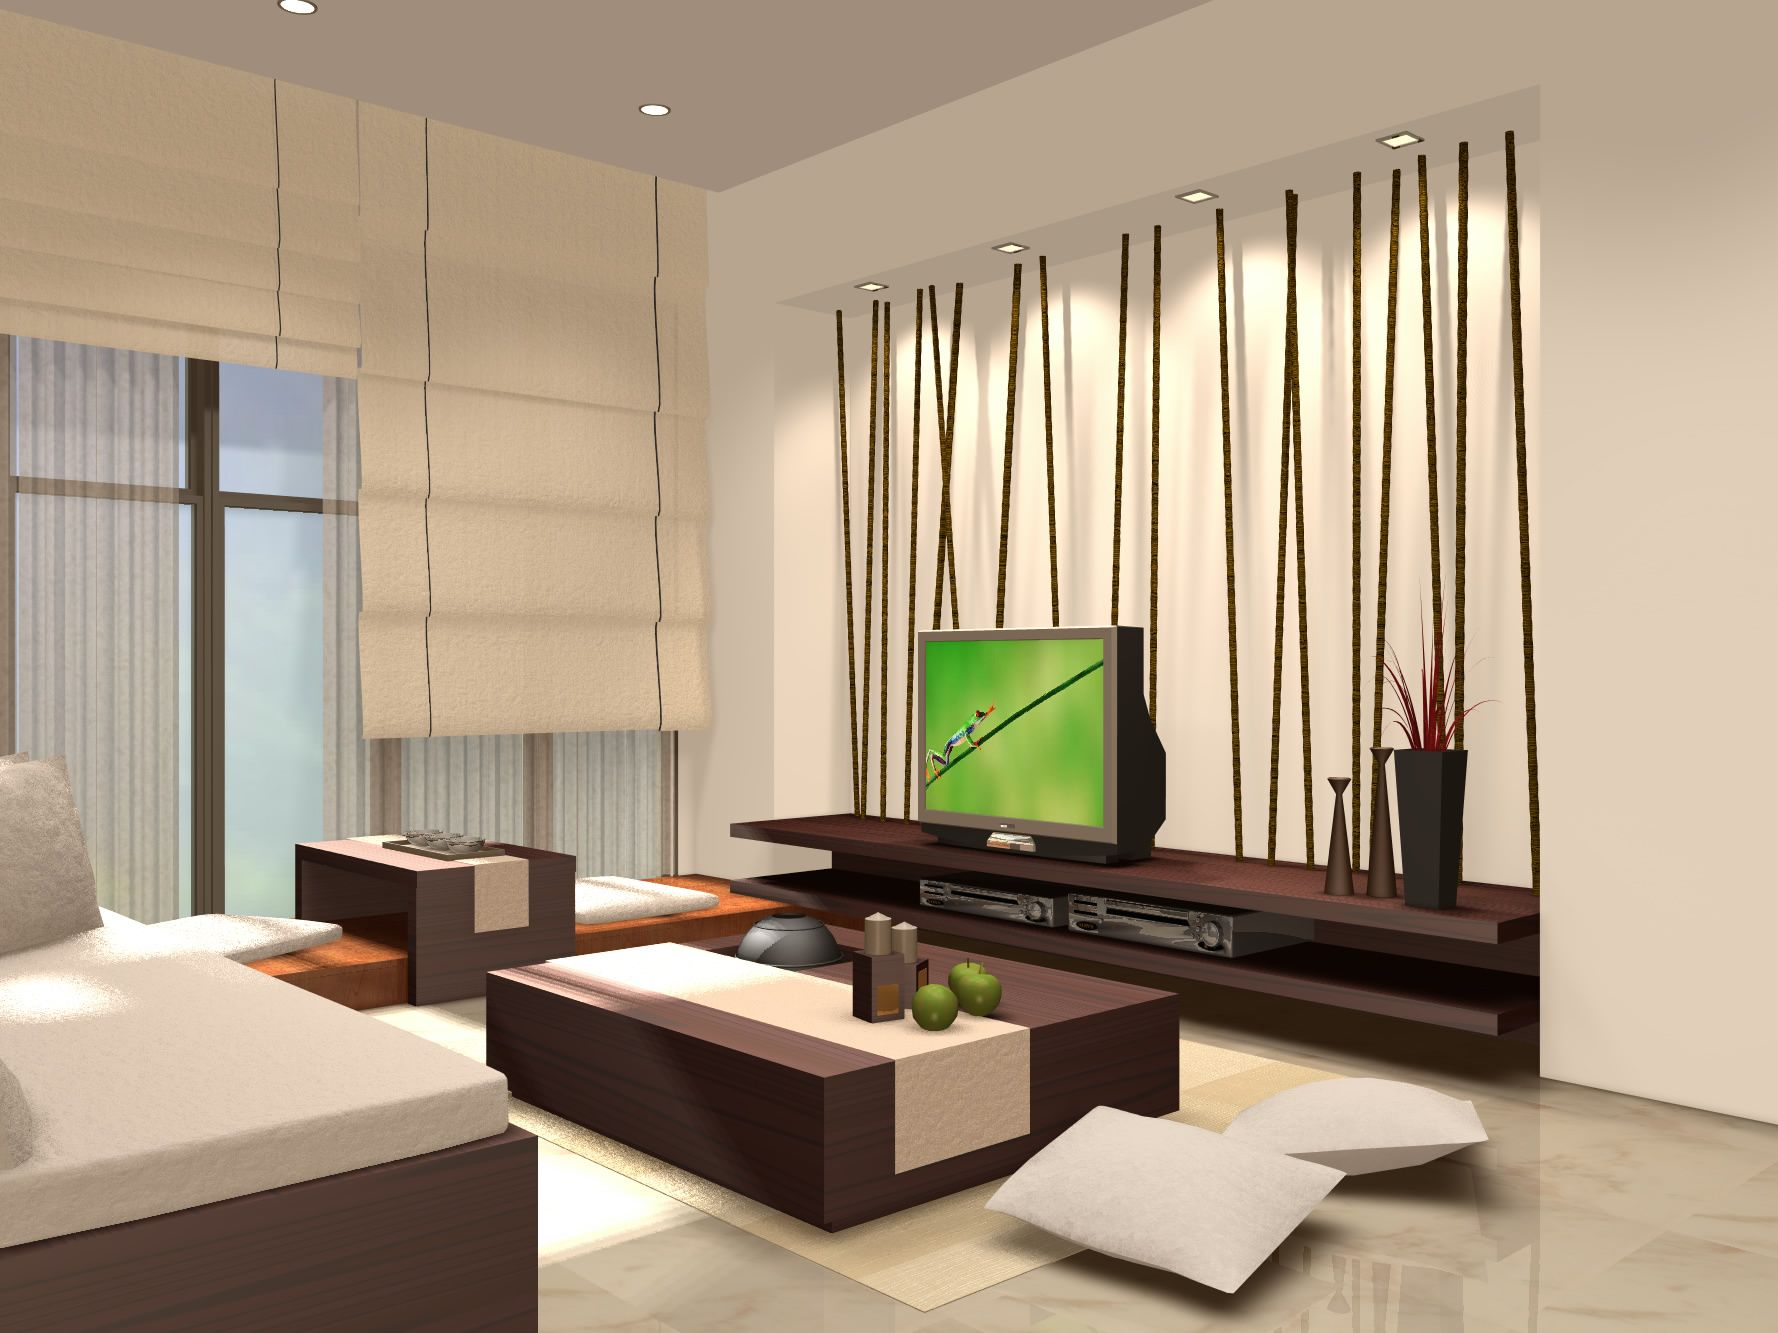 Zen interior style and zen interior design